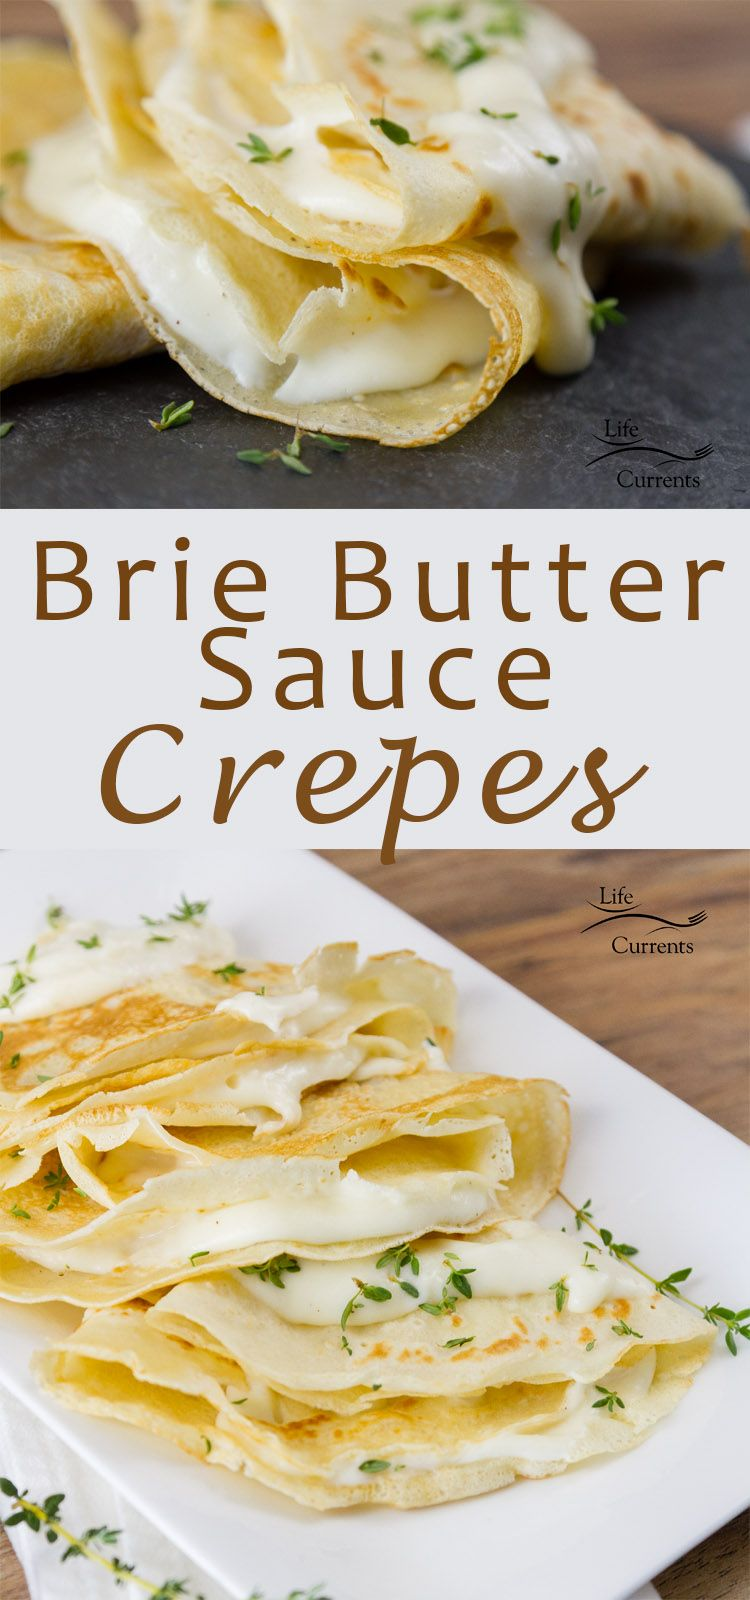 Brie butter sauce crepes the best of french cuisine made at home brie butter sauce crepes the best of french cuisine made at home ad crepe panfrench food recipesvegetarian forumfinder Choice Image